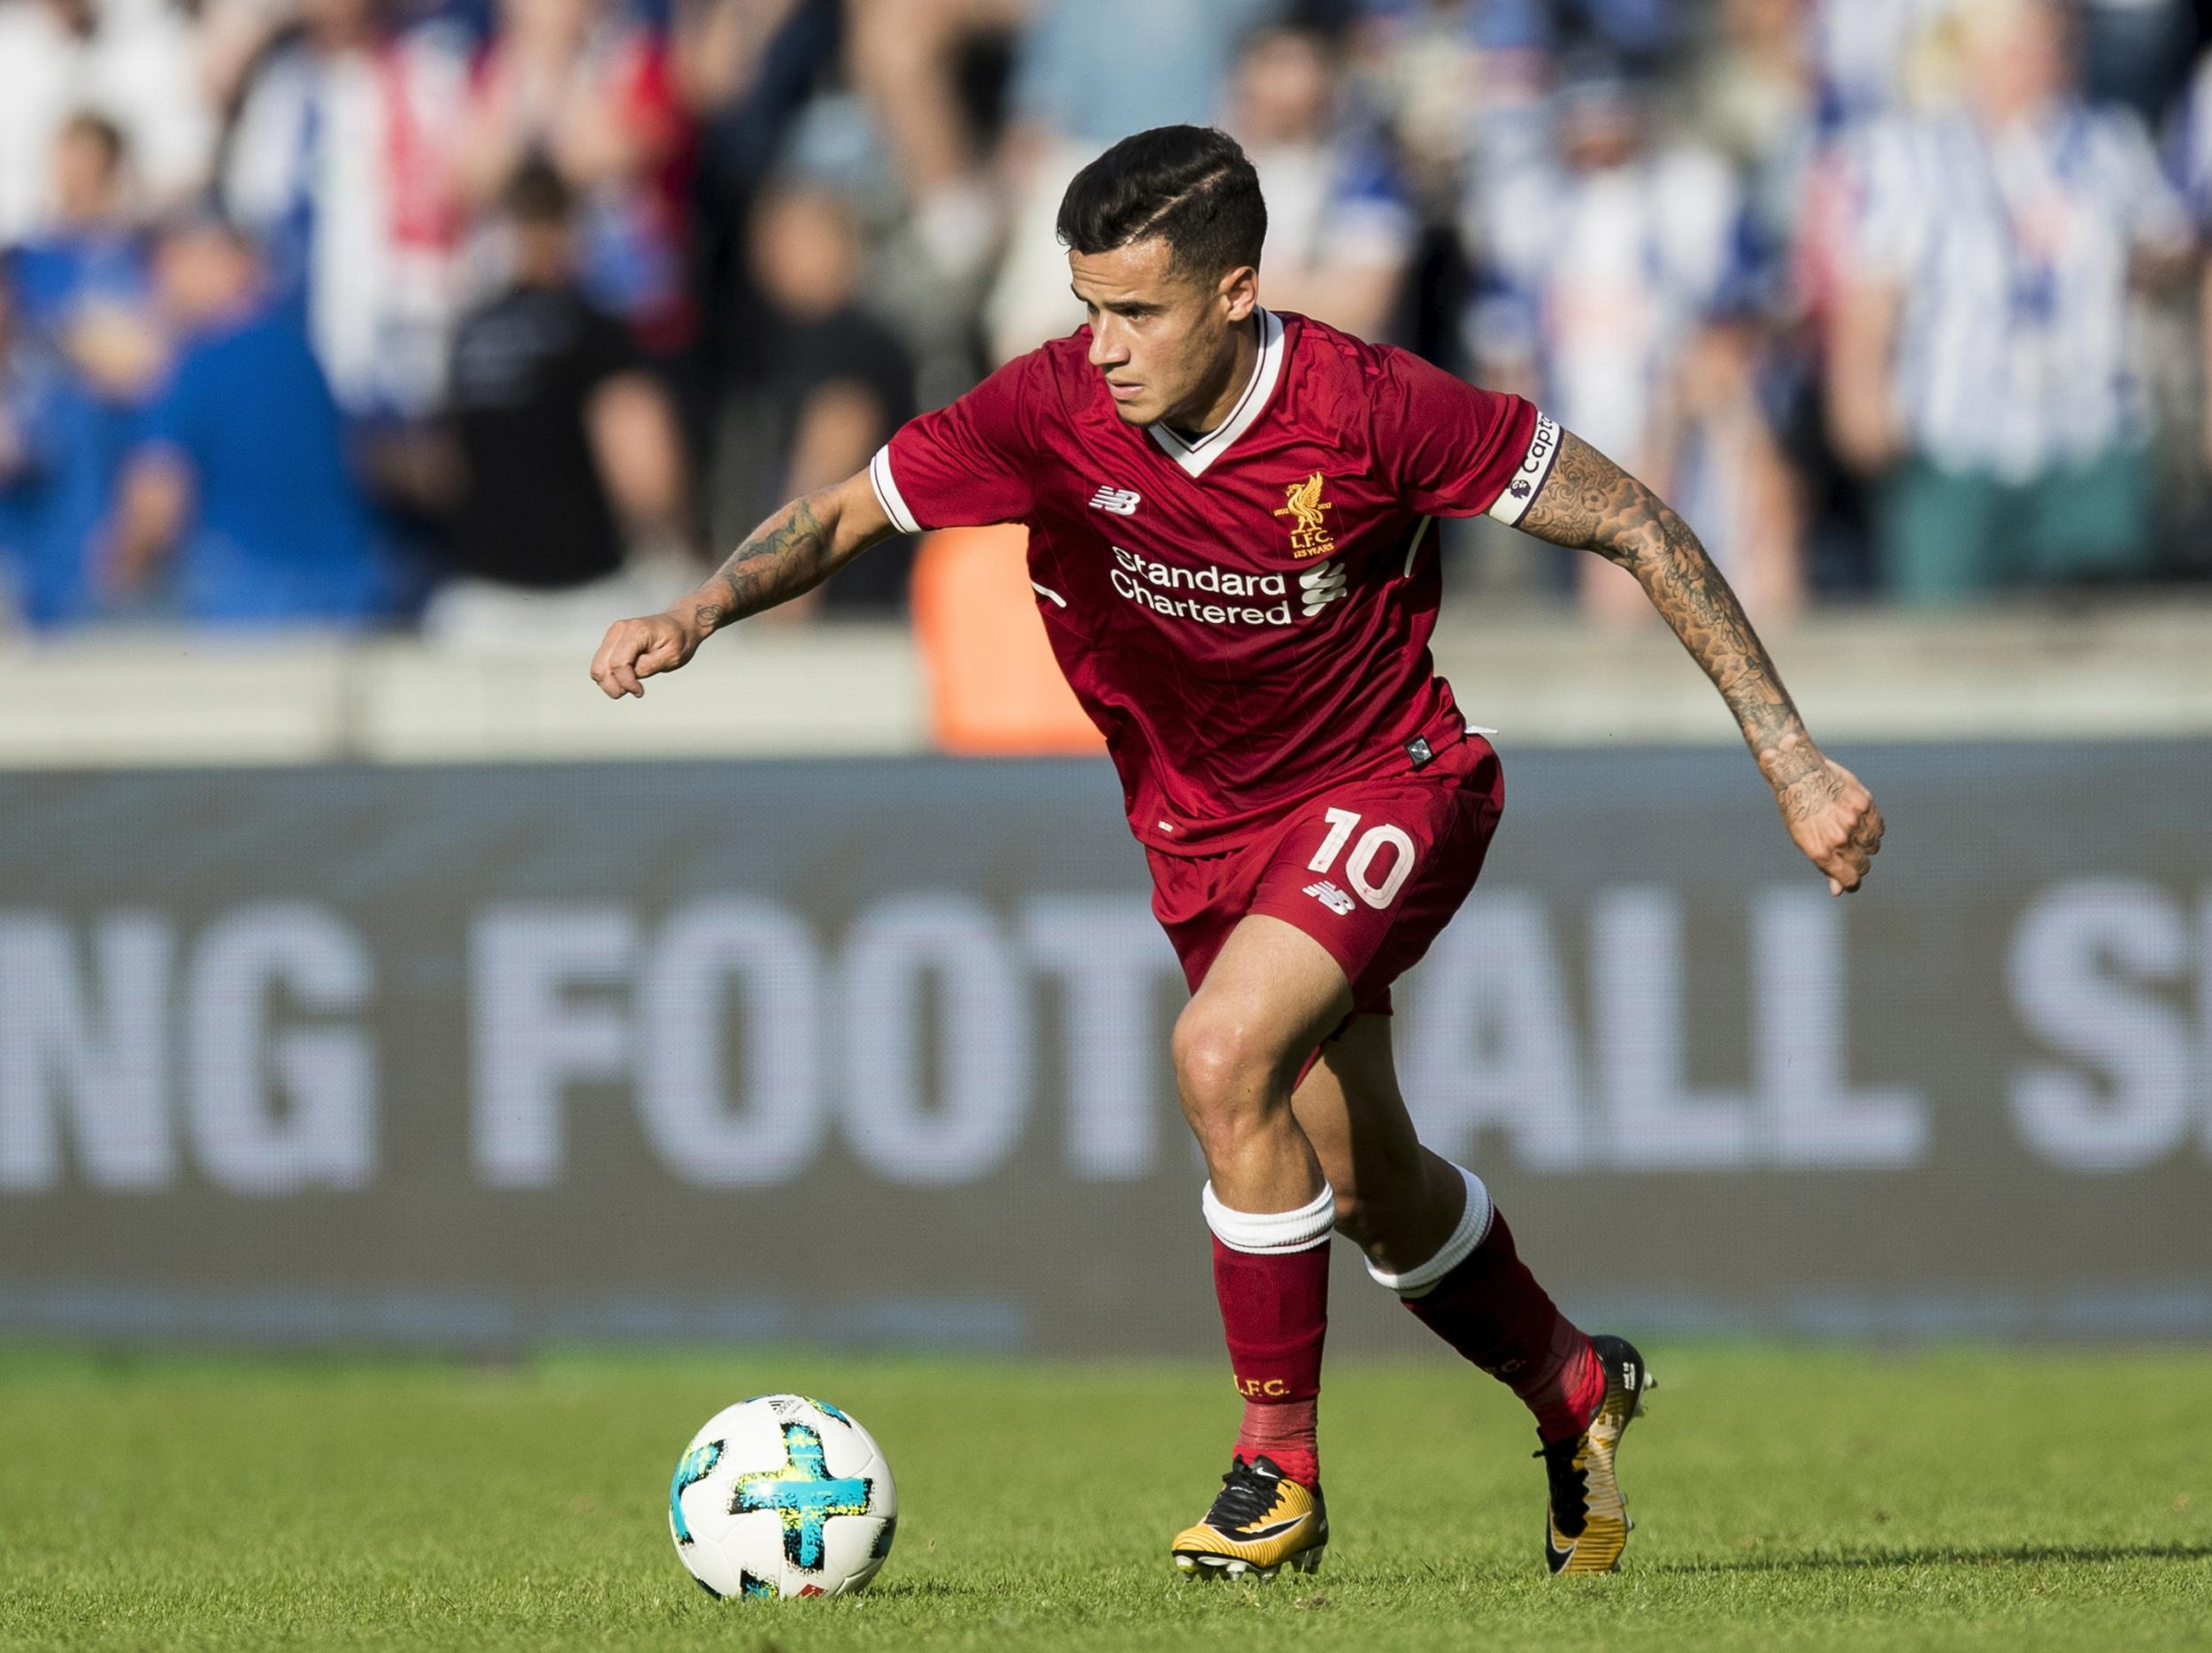 https://static.independent.co.uk/s3fs-public/thumbnails/image/2017/08/11/10/philippe-coutinho.jpg